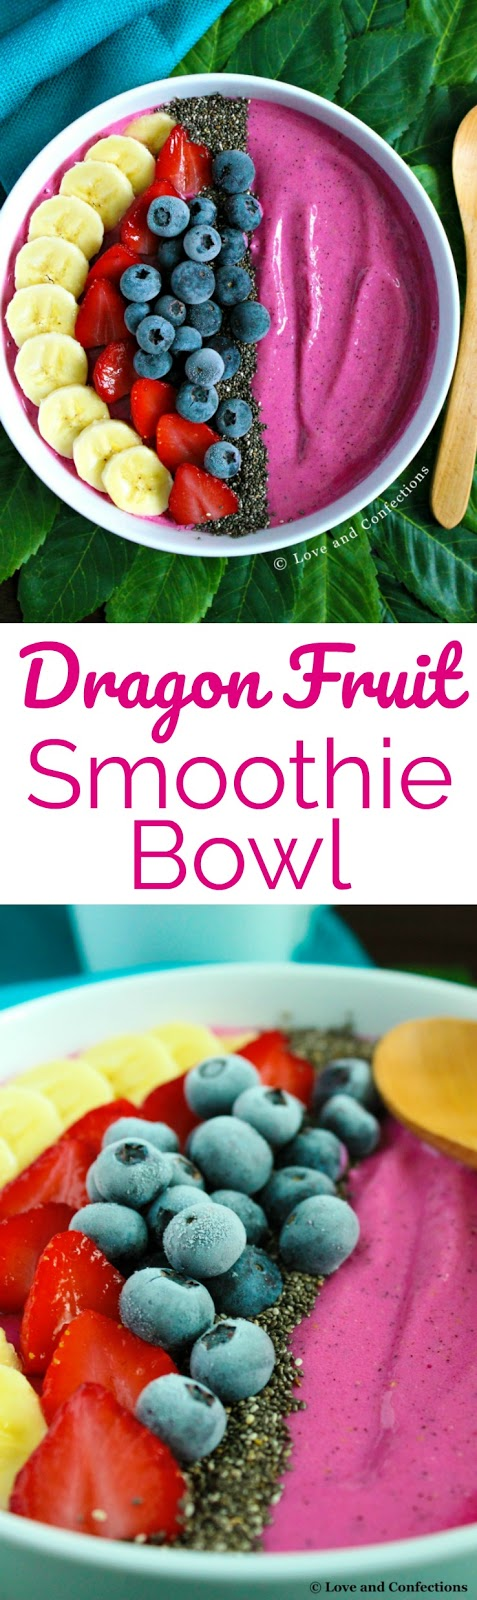 Dragon Fruit Smoothie Bowls from LoveandConfections.com #SundaySupper #JuneDairyMonth